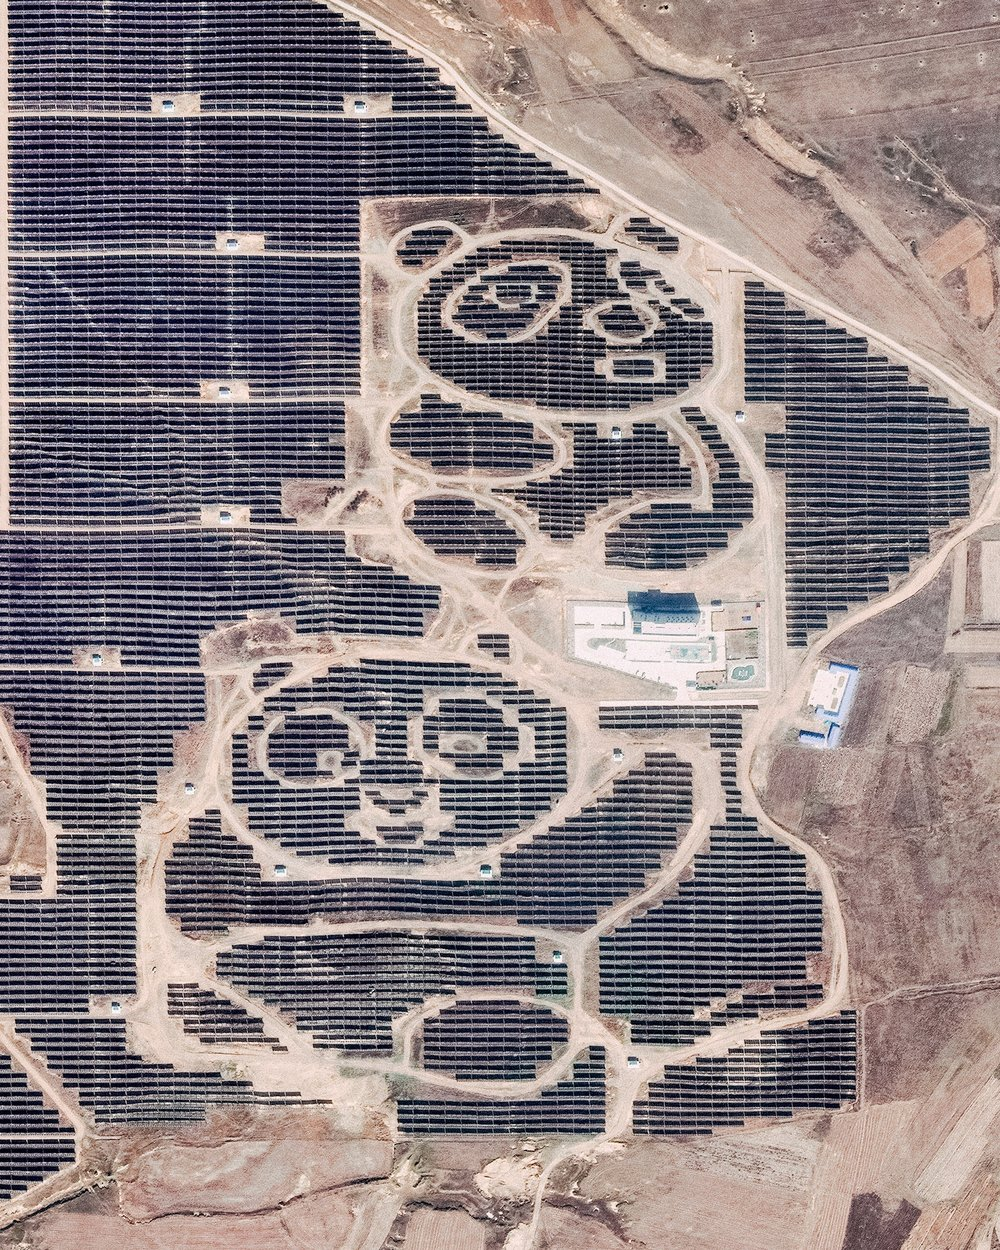 "Two pandas are formed by solar panels at the Panda Green Energy power plant in Datong, Shanxi Province, northern China. Built in cooperation with the United Nations Development Program, this solar farm covers roughly 1,500 acres and includes an education center that teaches children about sustainable and renewable energy.  39°58'23.6""N, 113°29'03.7""E  Source imagery: DigitalGlobe"